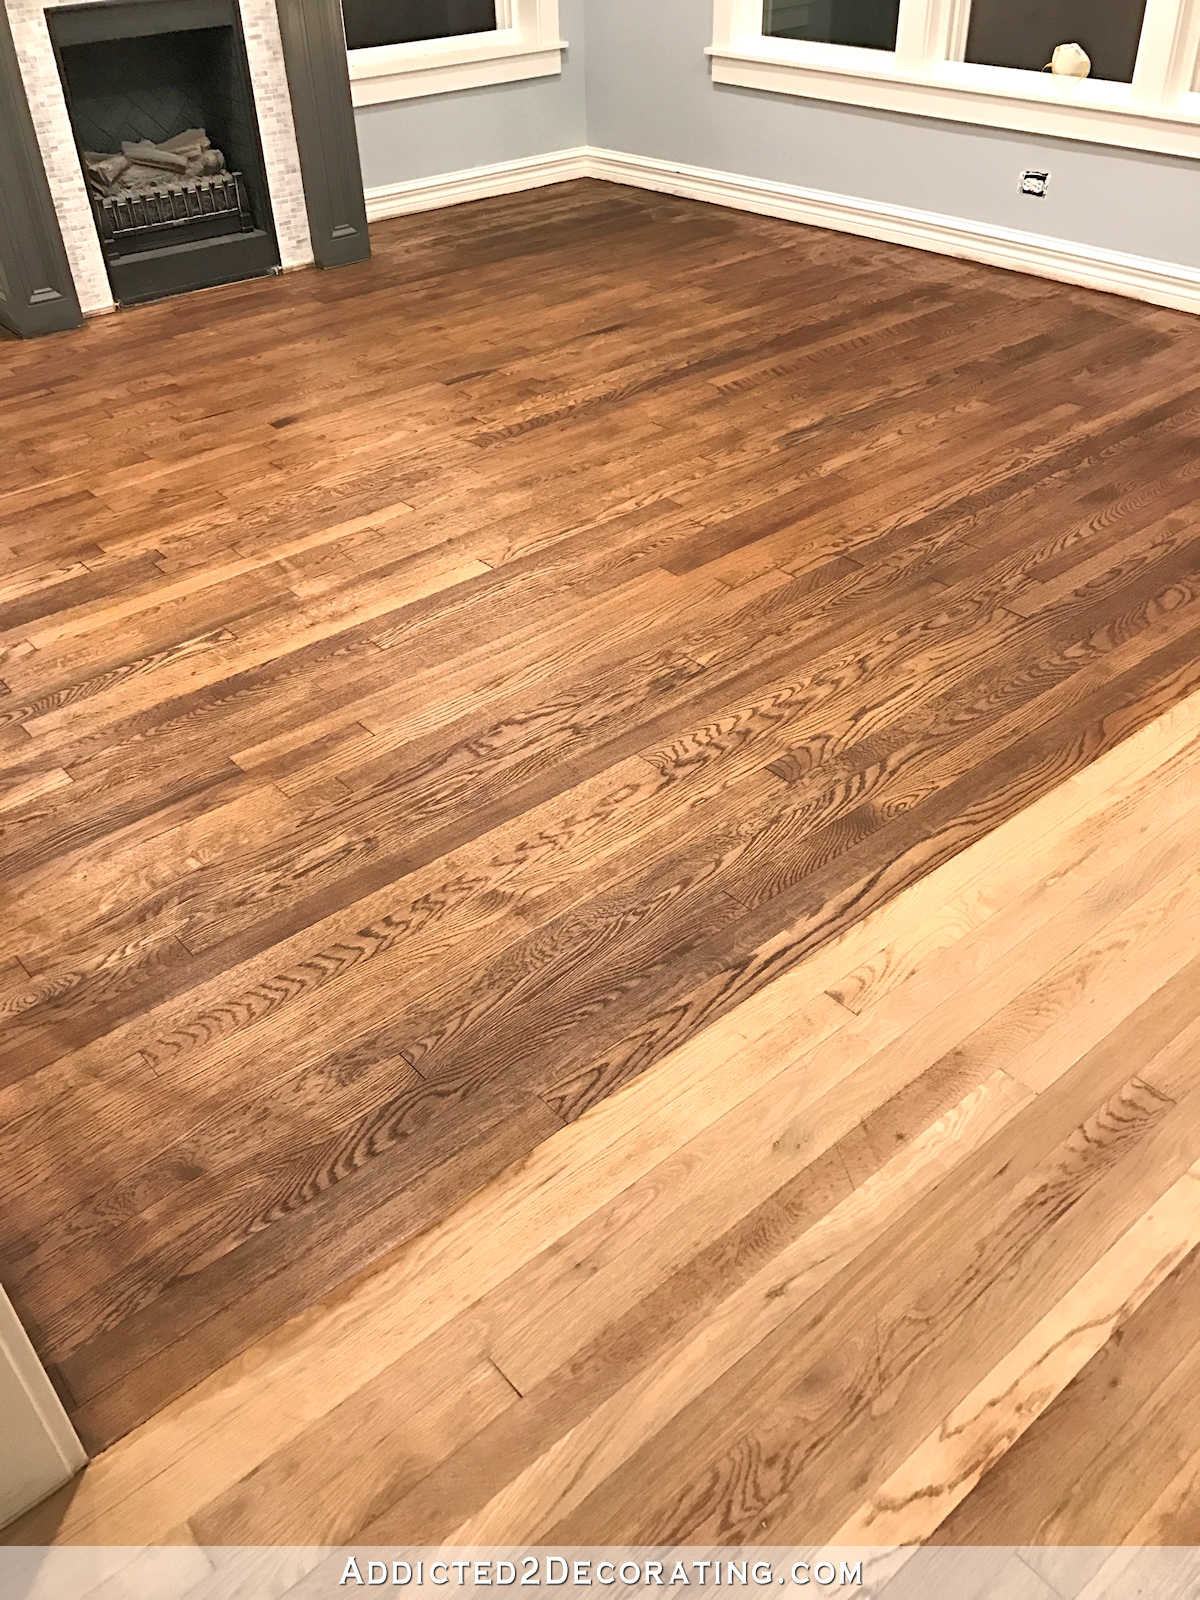 red oak hardwood flooring matte finish of adventures in staining my red oak hardwood floors products process with staining red oak hardwood floors 7 stain on the living room floor